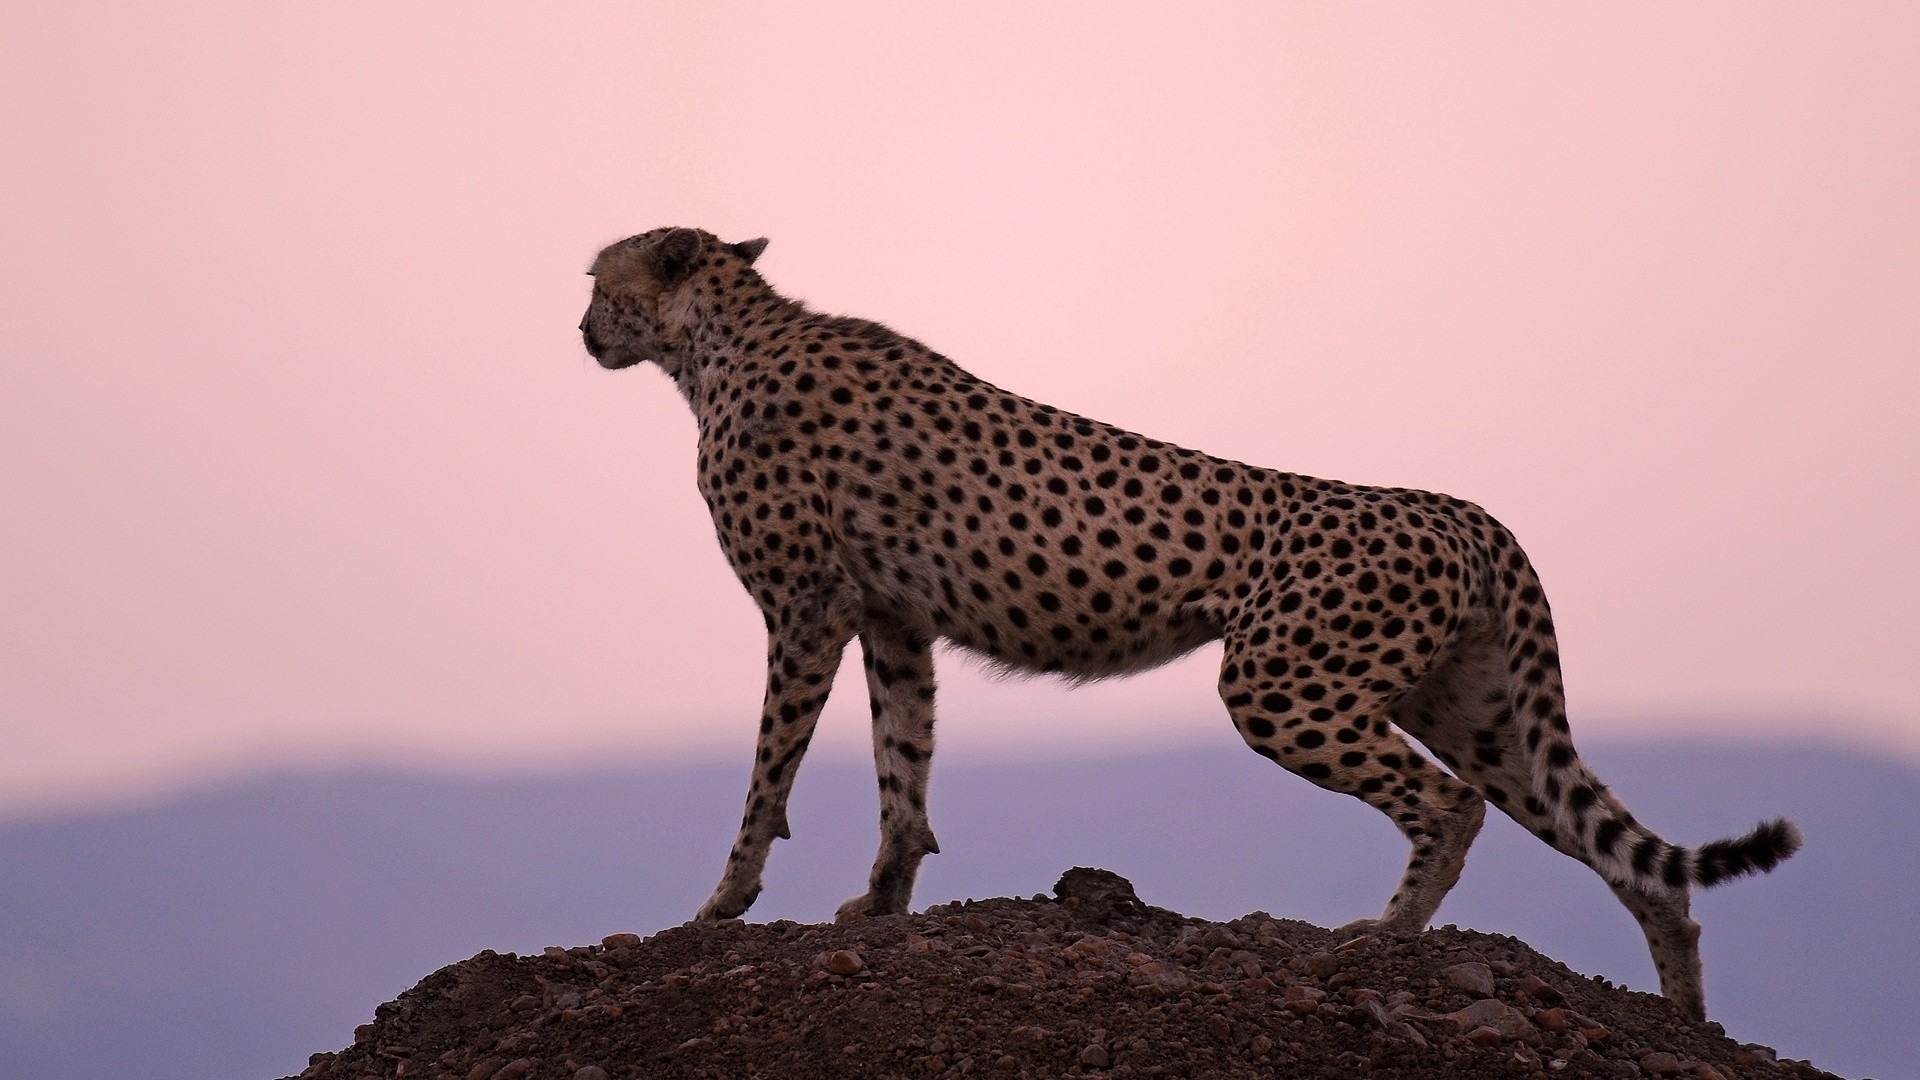 Cheetah Free Wallpaper and Background